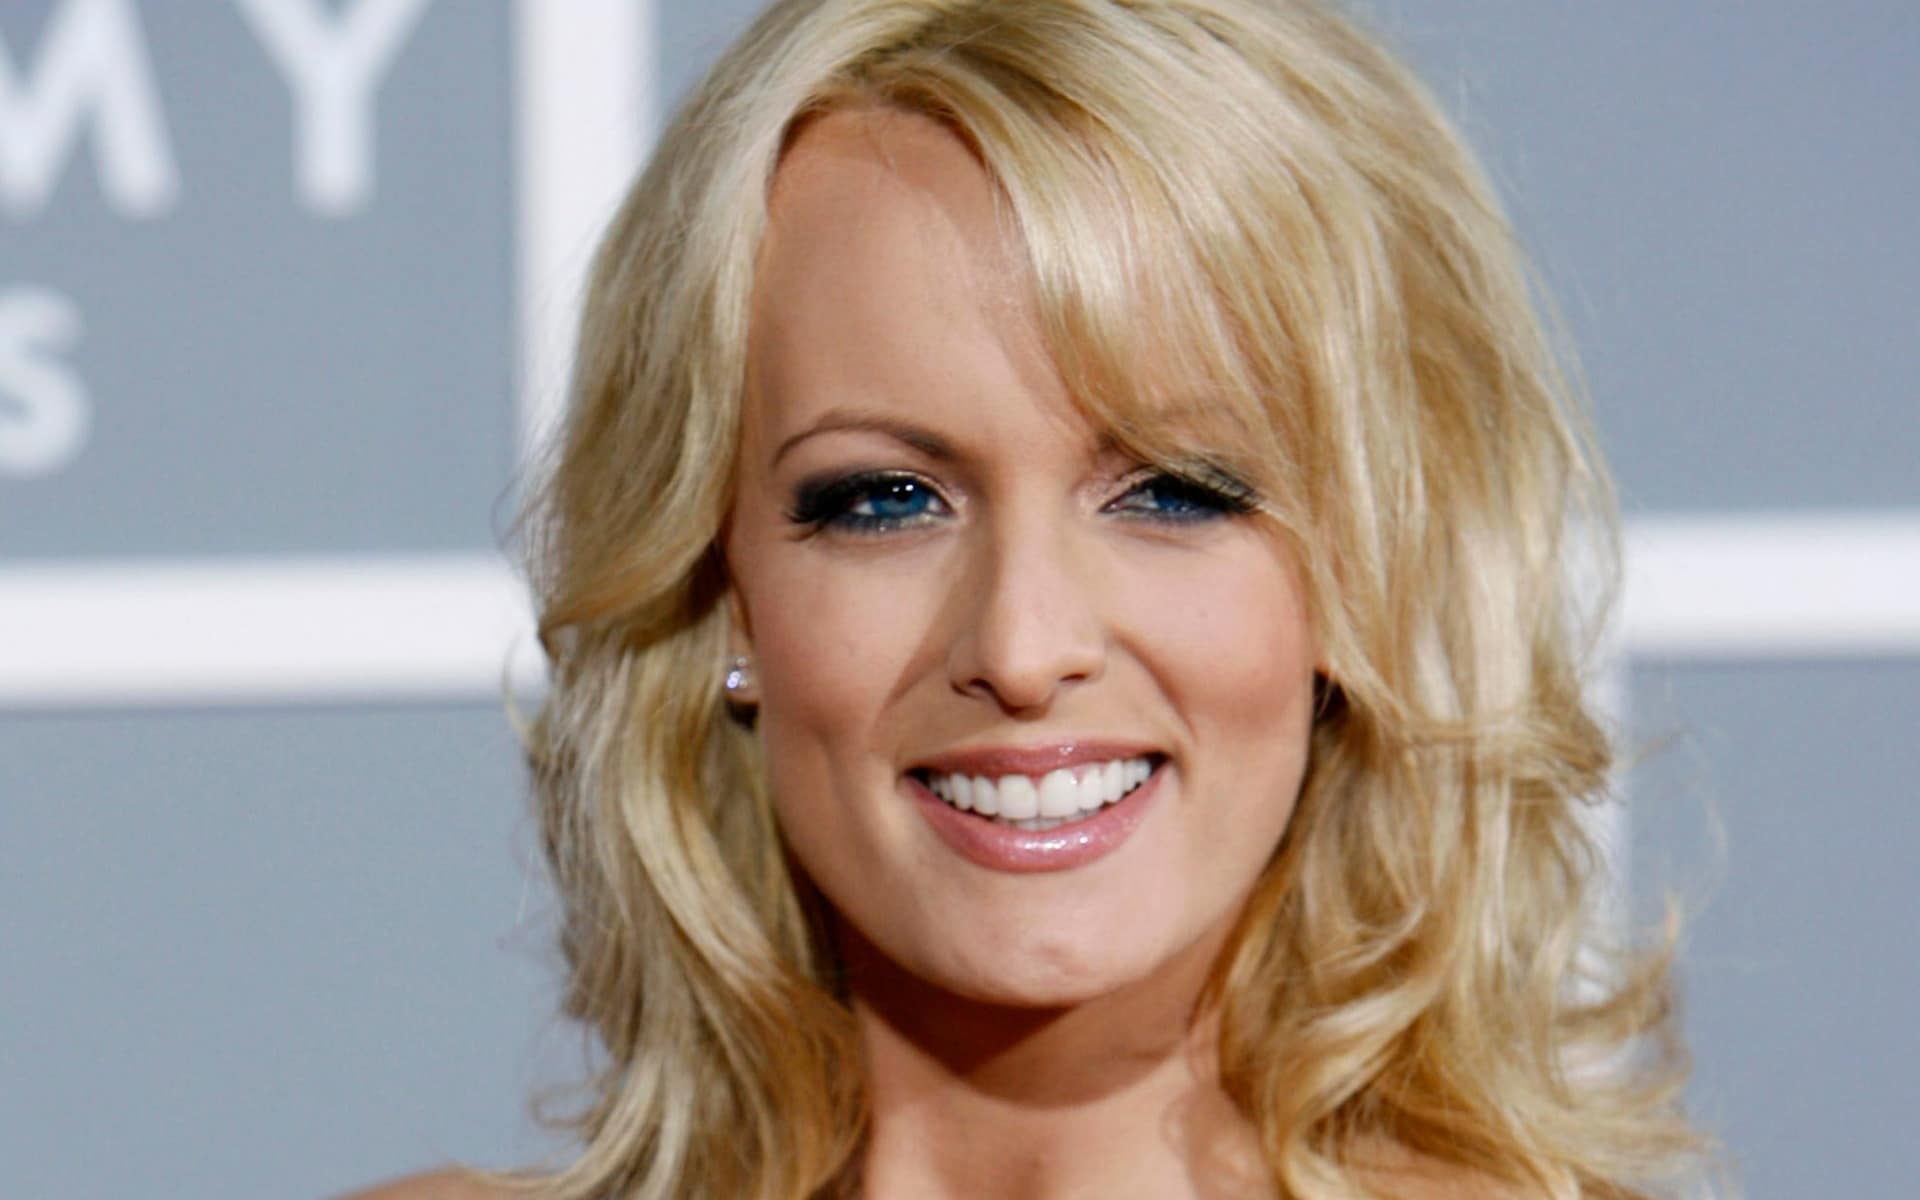 Stormy Daniels releases new perfume called Truth